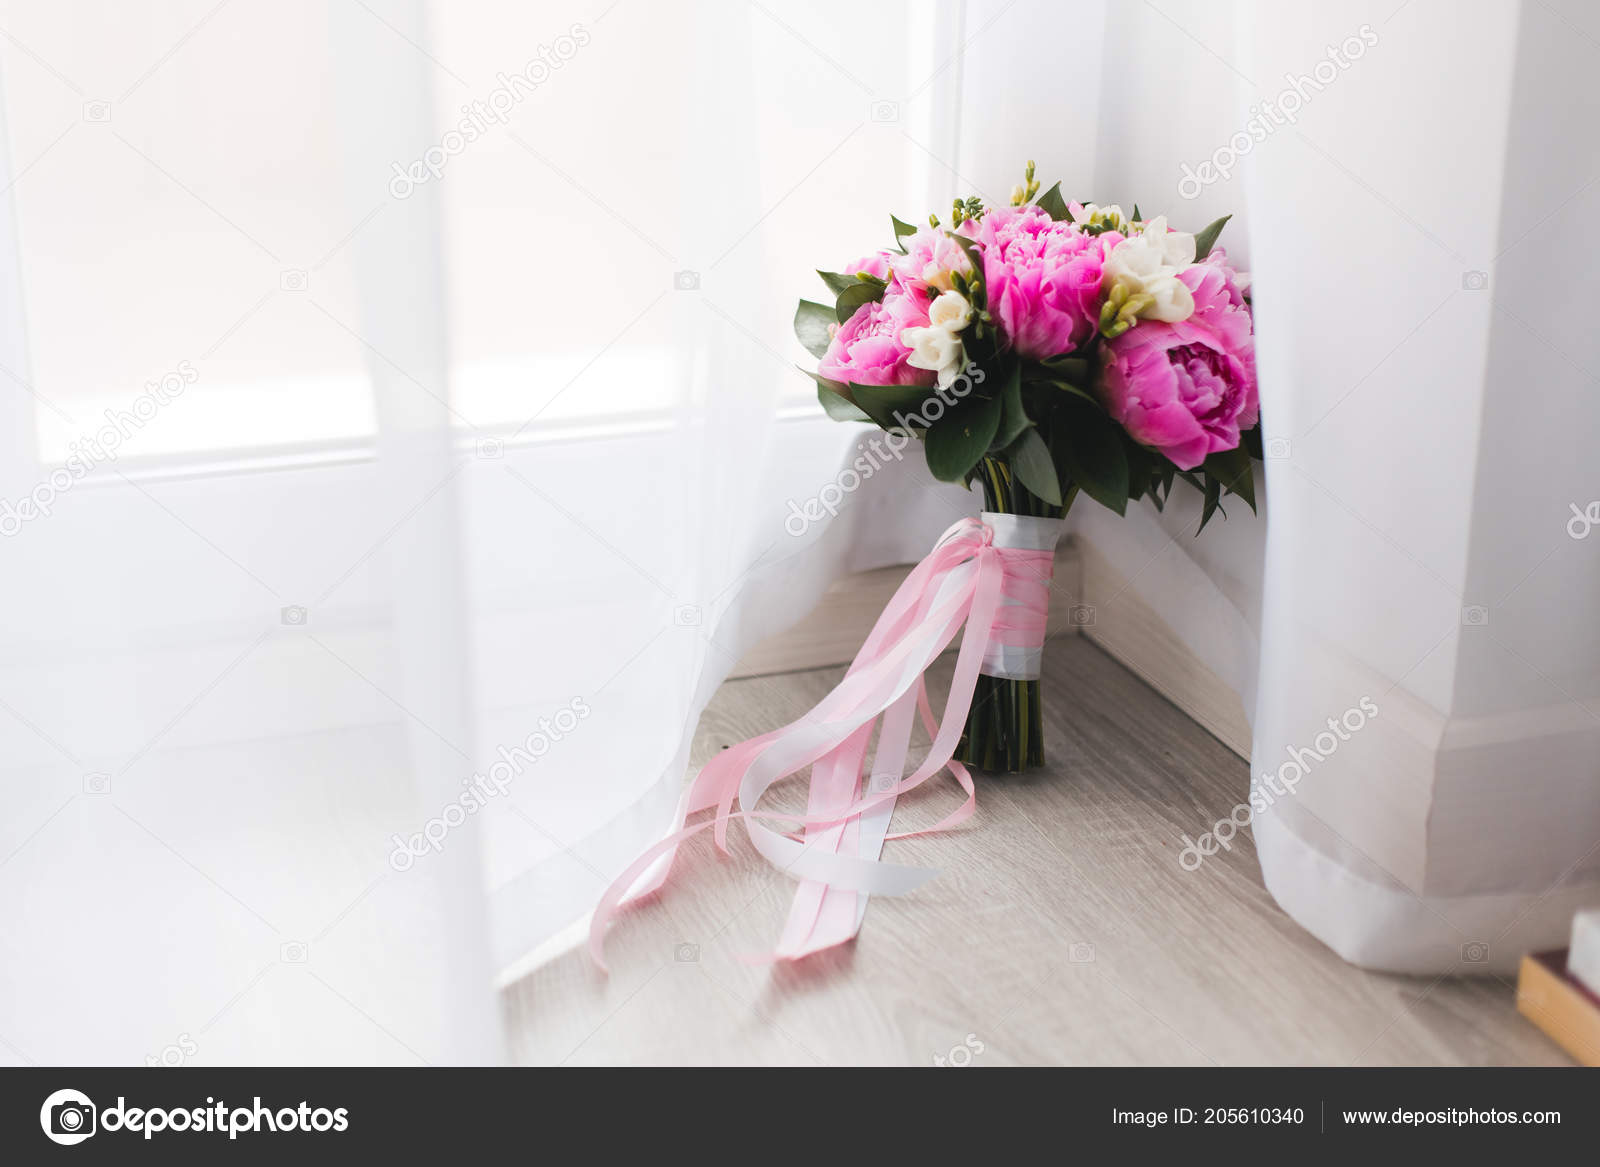 Beautiful Pink Peonies Bouquet White Pink Satin Ribbons Stock Photo C Mat Mary 205610340